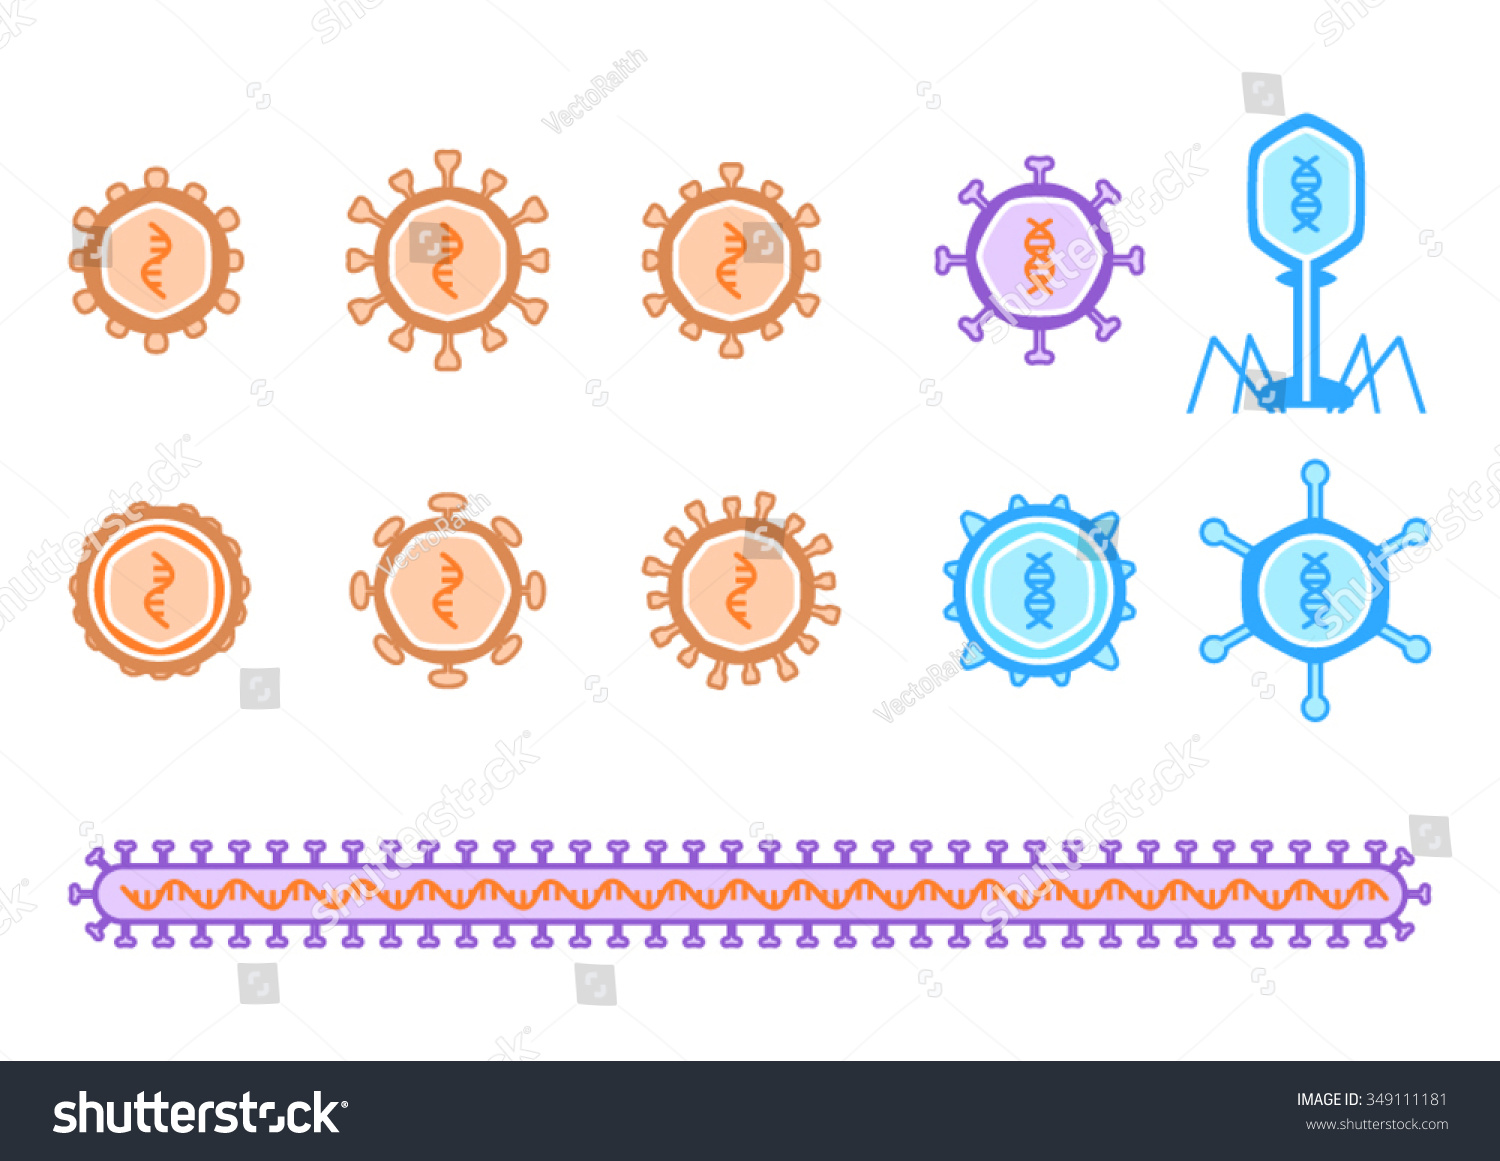 basic virus diagram honeywell thermostat tahoma simple viruses describing rna dna stock vector royalty free and including bacteriophage is orange